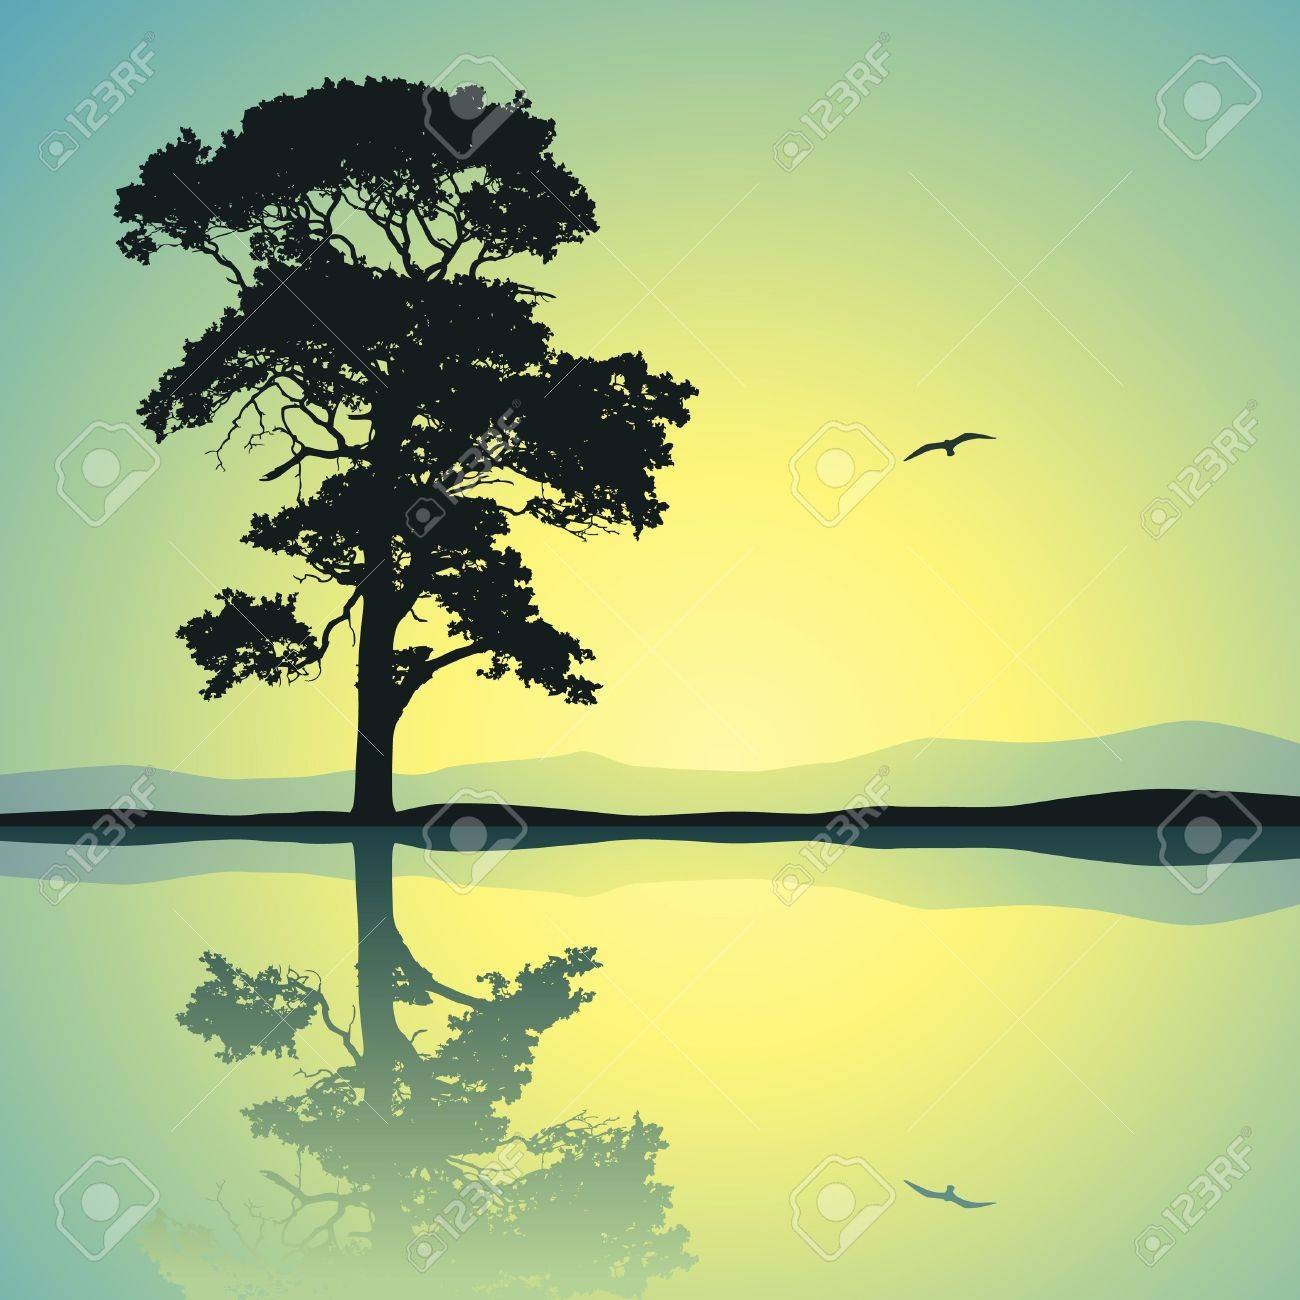 A Single Tree Standing Alone with Reflection in Water Stock Vector - 12349930